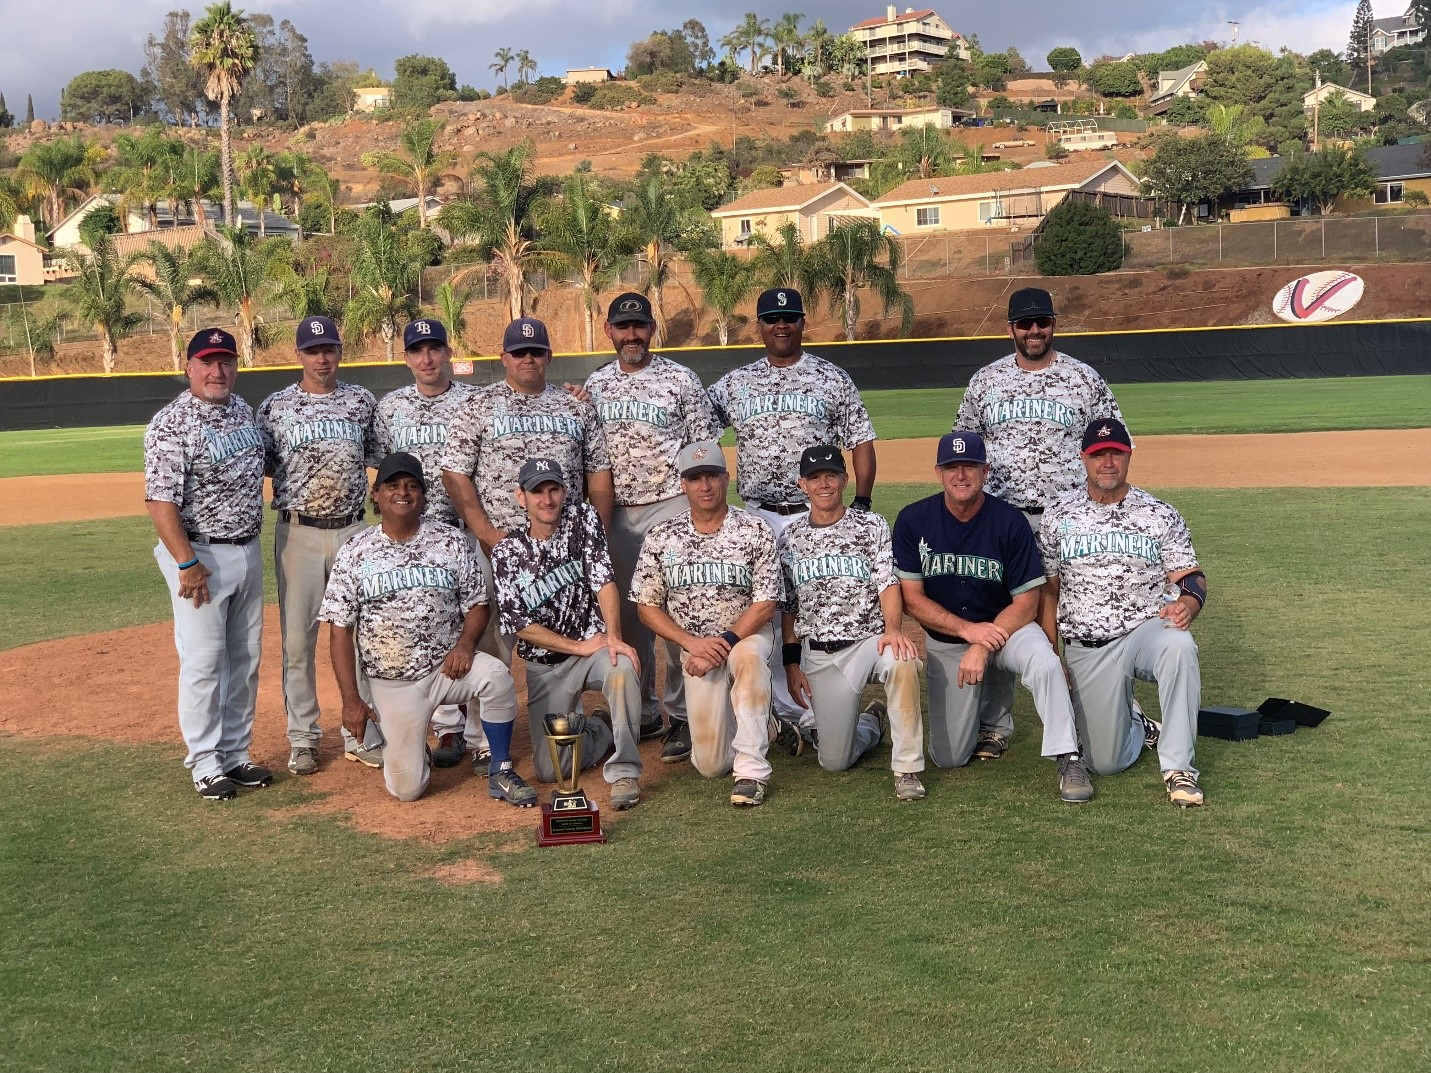 2018 MSBL 45+ SUMMER LEAGUE CHAMPIONS NORTH COUNTY MARINERS